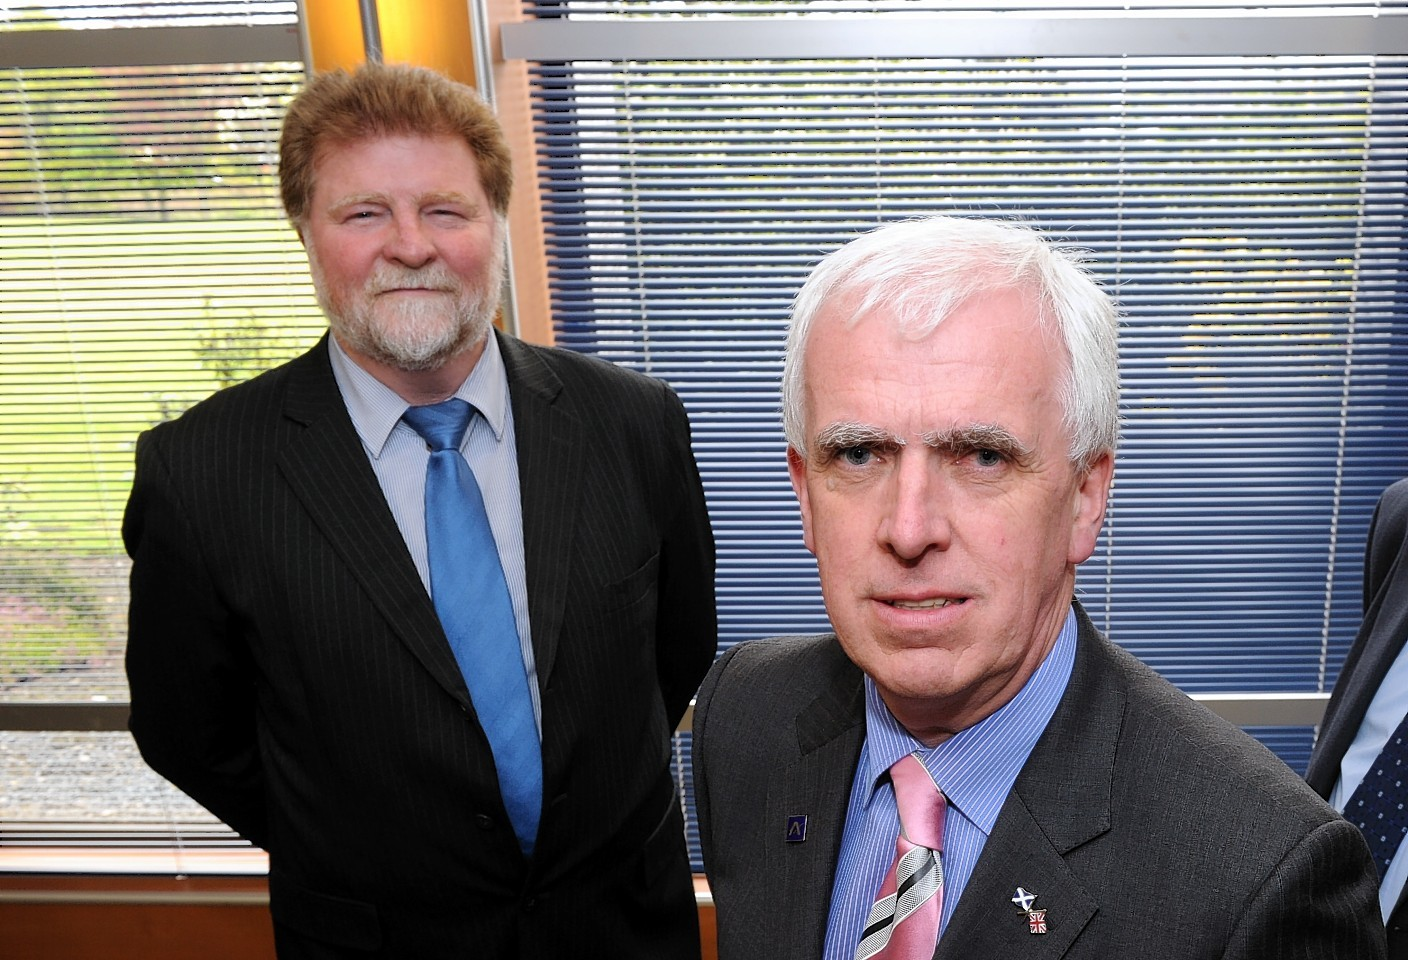 Martin Kitts-Hayes and Jim Gifford, leaders of Aberdeenshire Council